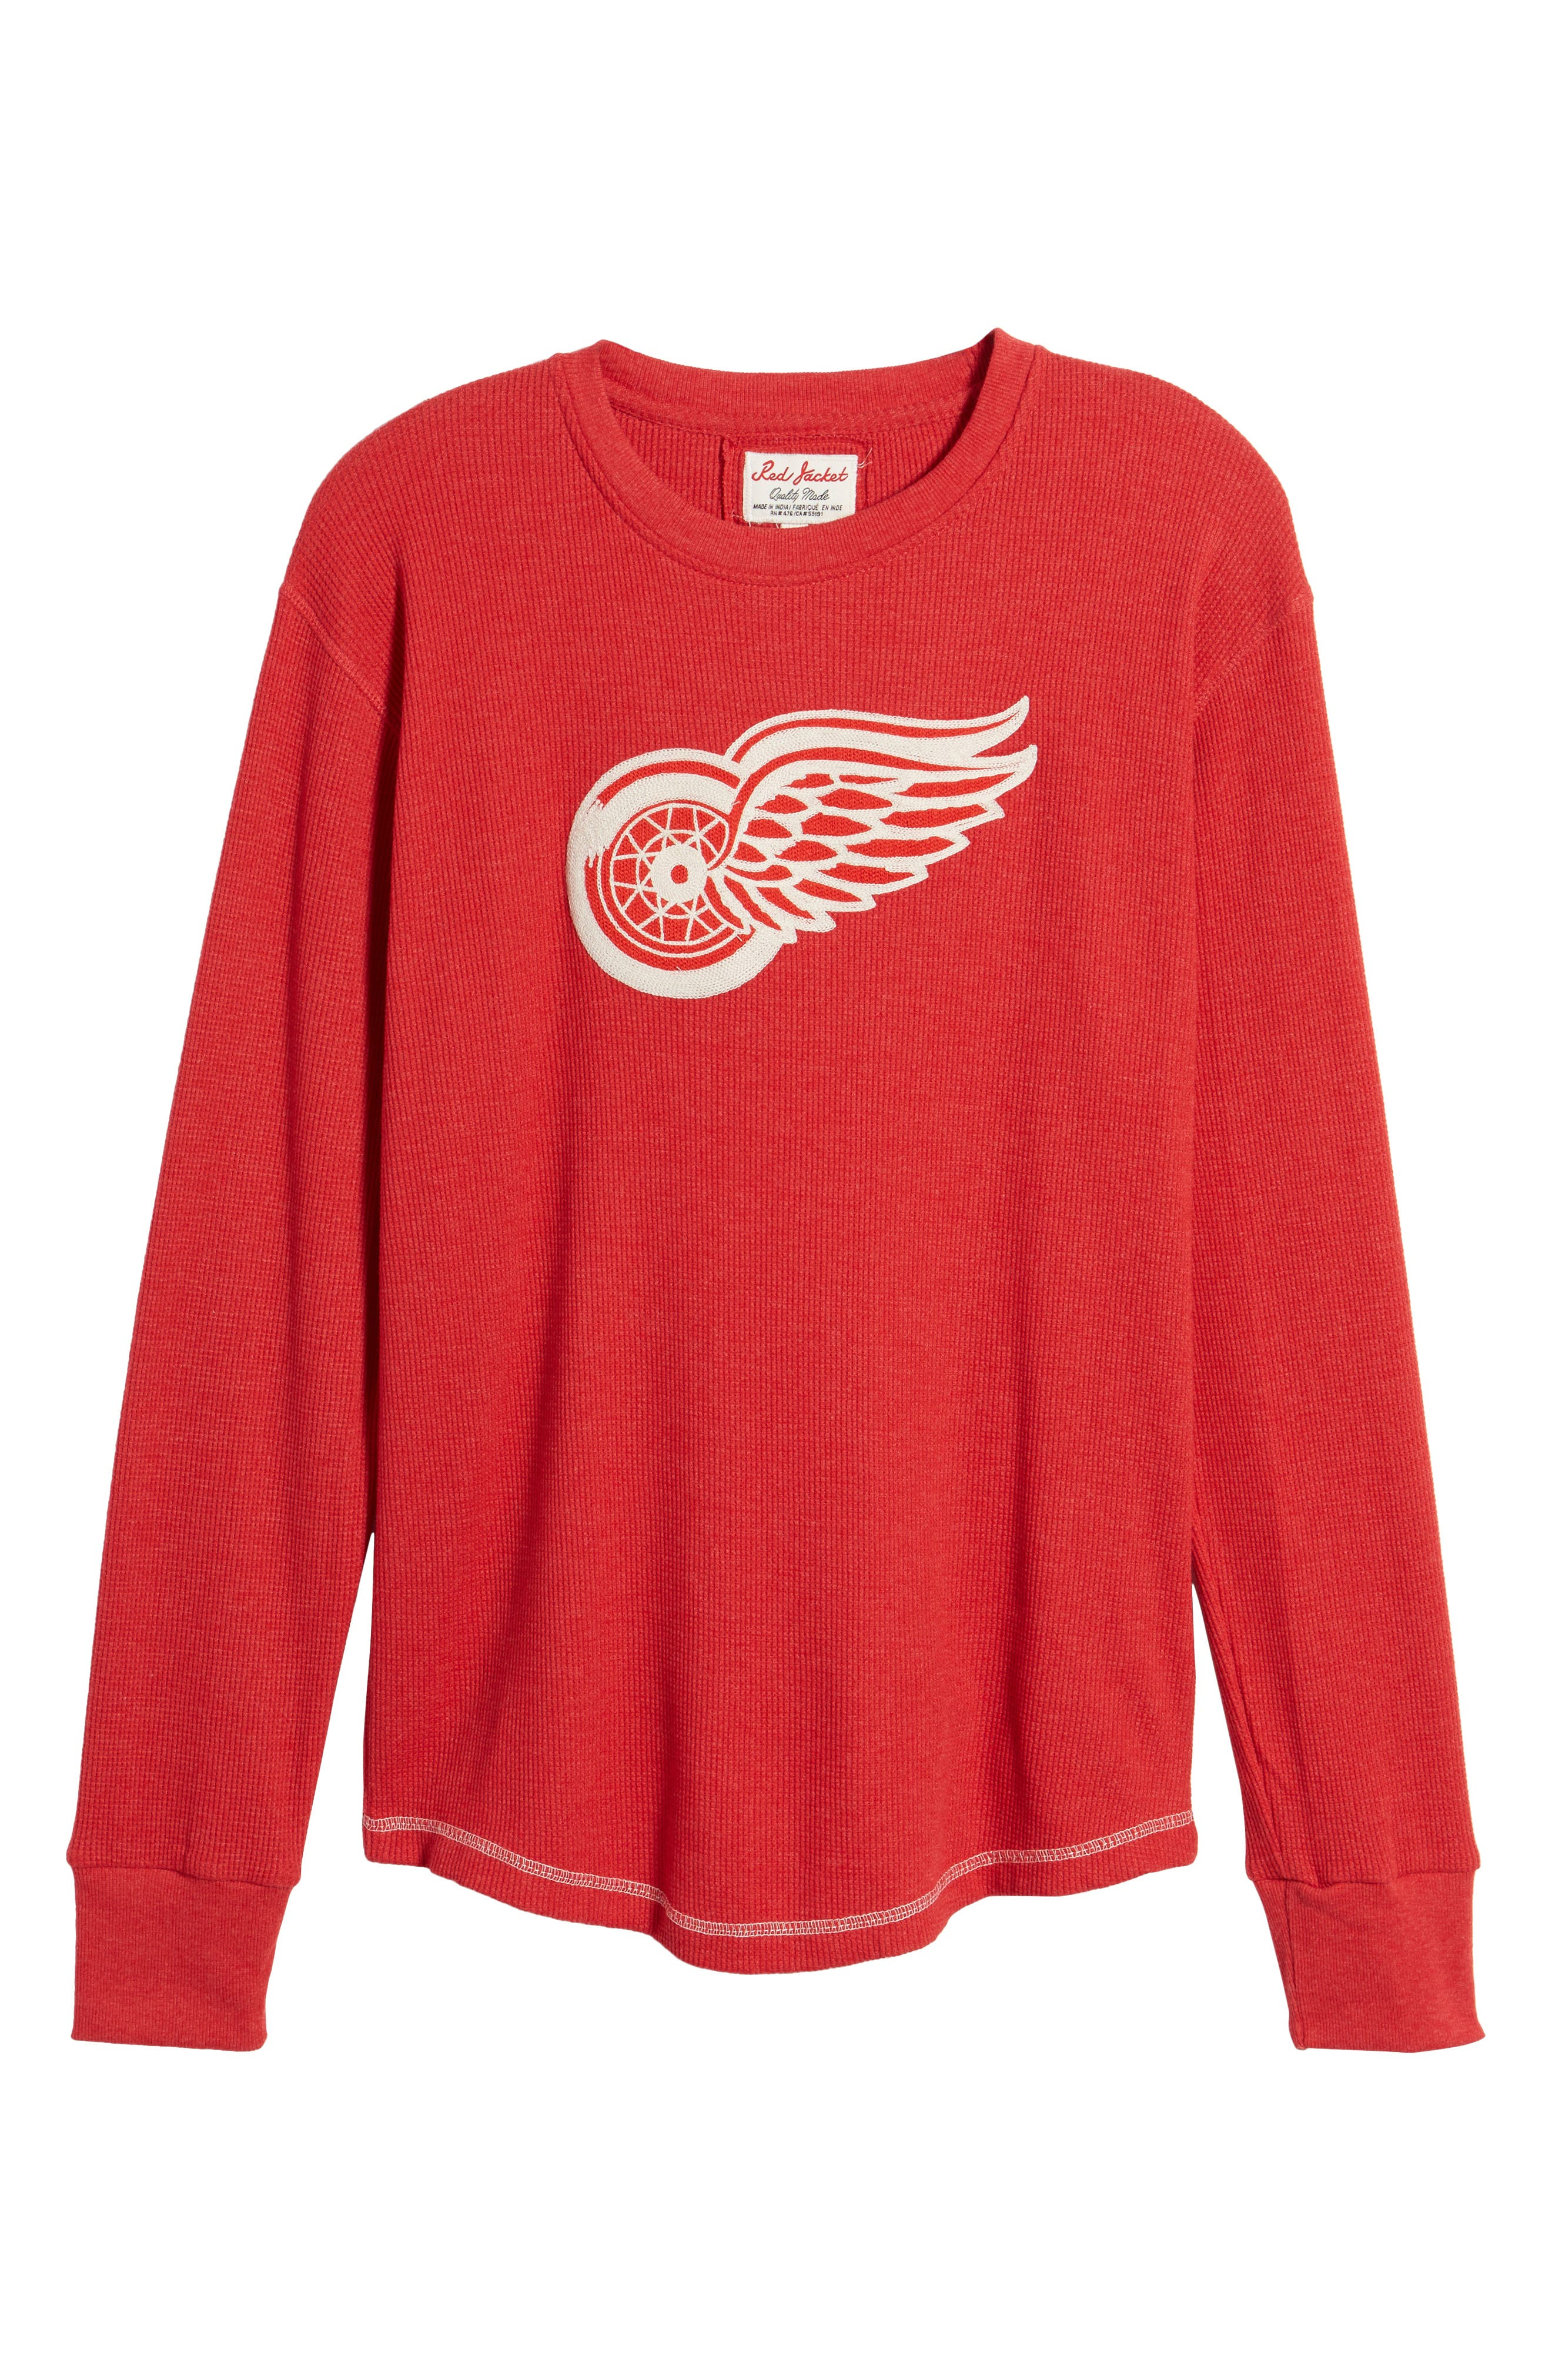 Detroit Red Wings Embroidered Long Sleeve Thermal Shirt,                             Alternate thumbnail 6, color,                             600